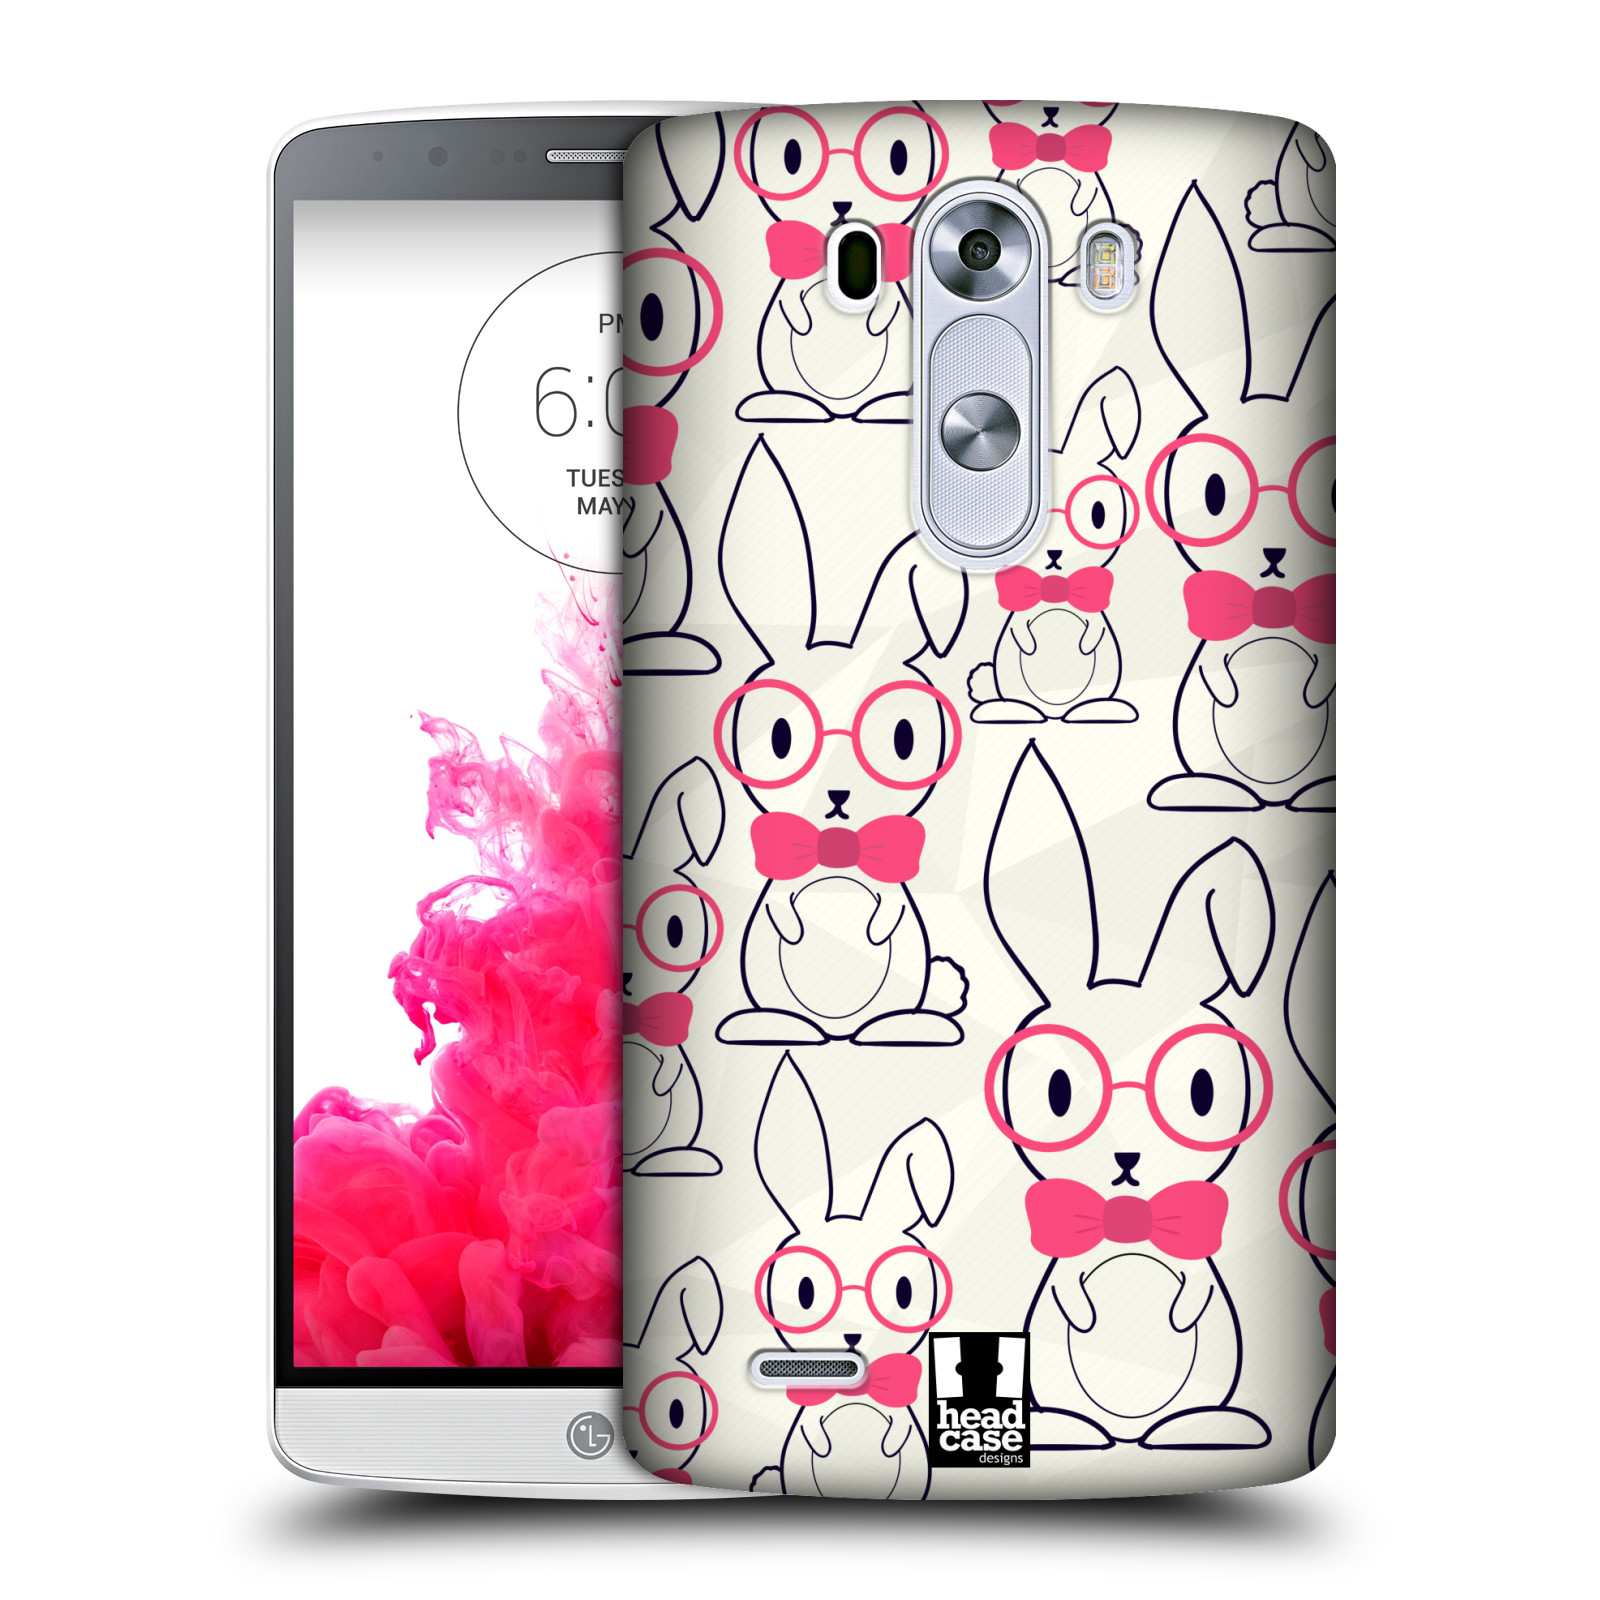 Head case designs cute geeky hard back case for lg phones 1 for Case design